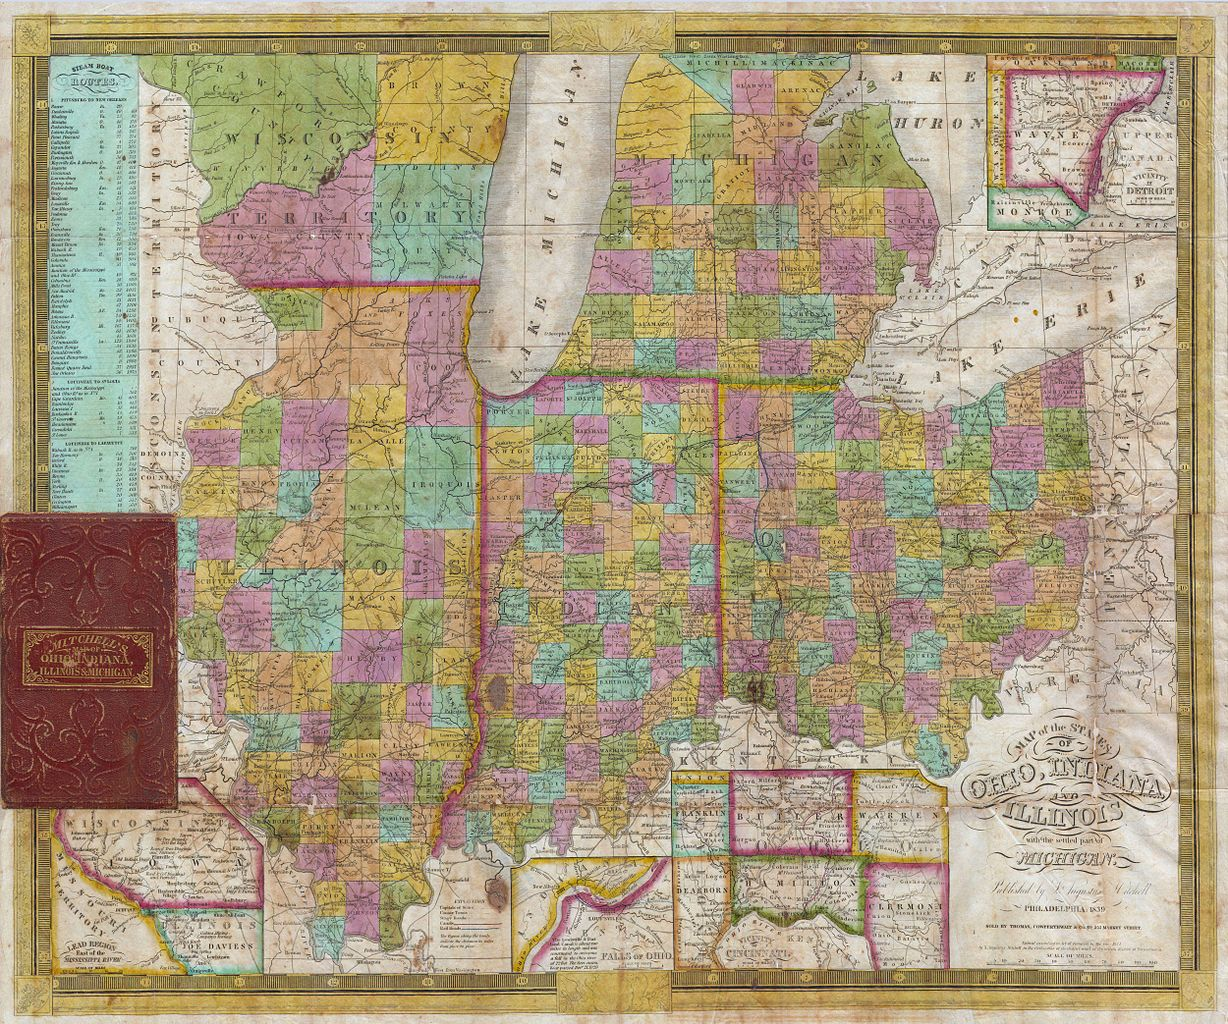 Michigan And Indiana Map.File 1838 Mitchell Pocket Map Of Ohio Indiana Illinois And